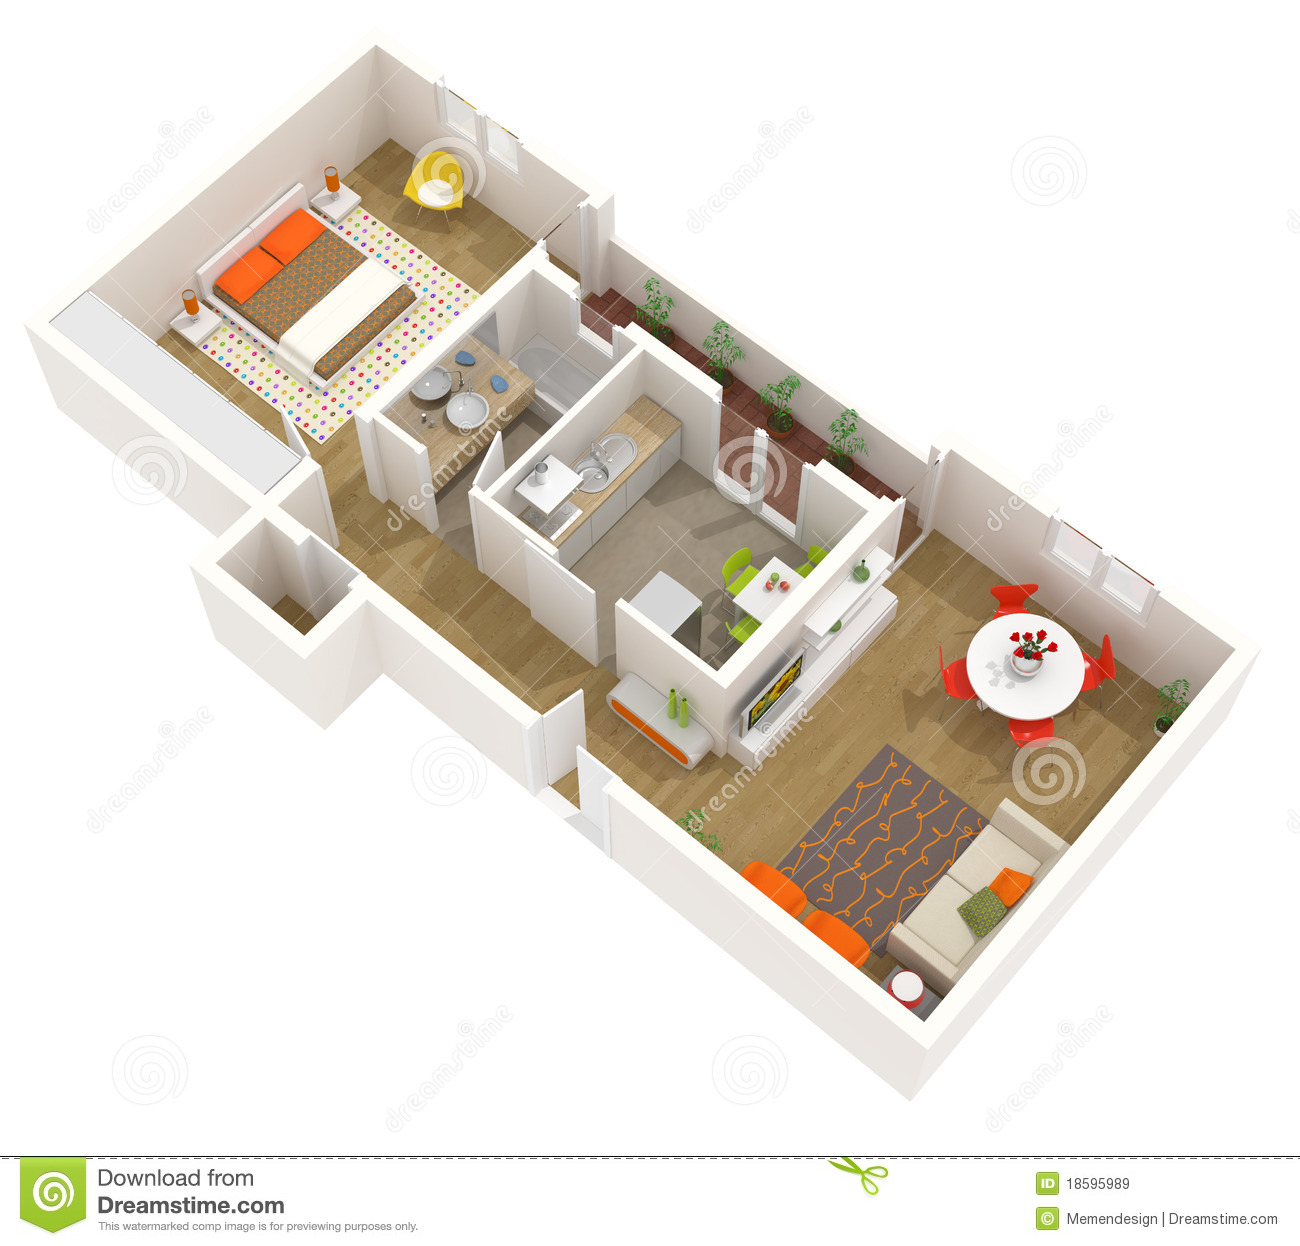 Apartment interior design 3d floor plan stock for Apartment design models